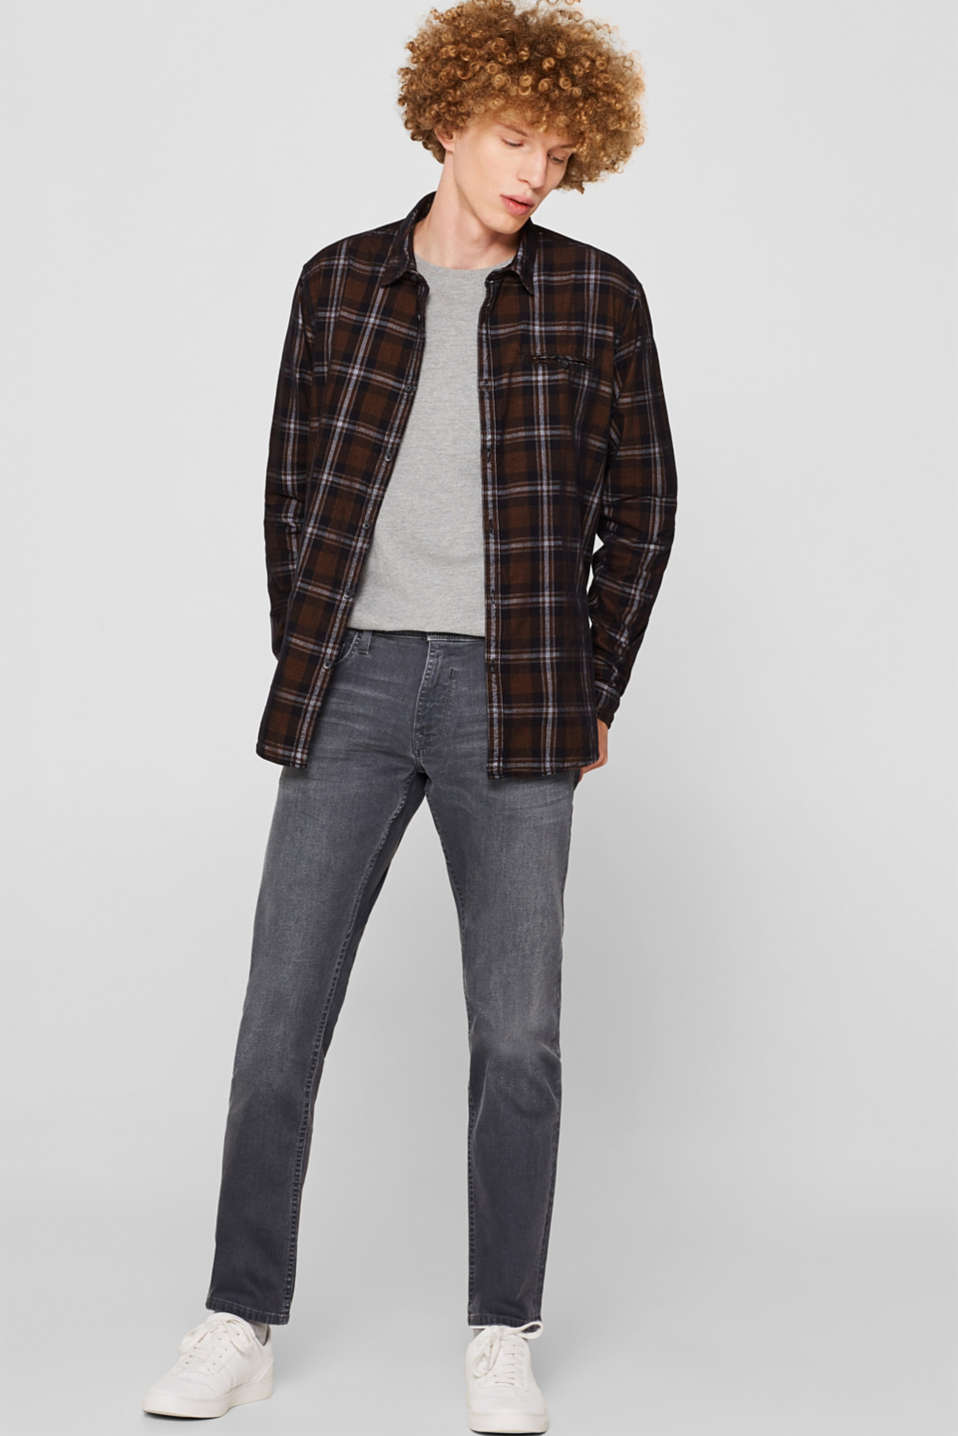 Corduroy top with a check pattern, 100% cotton, GREY, detail image number 1